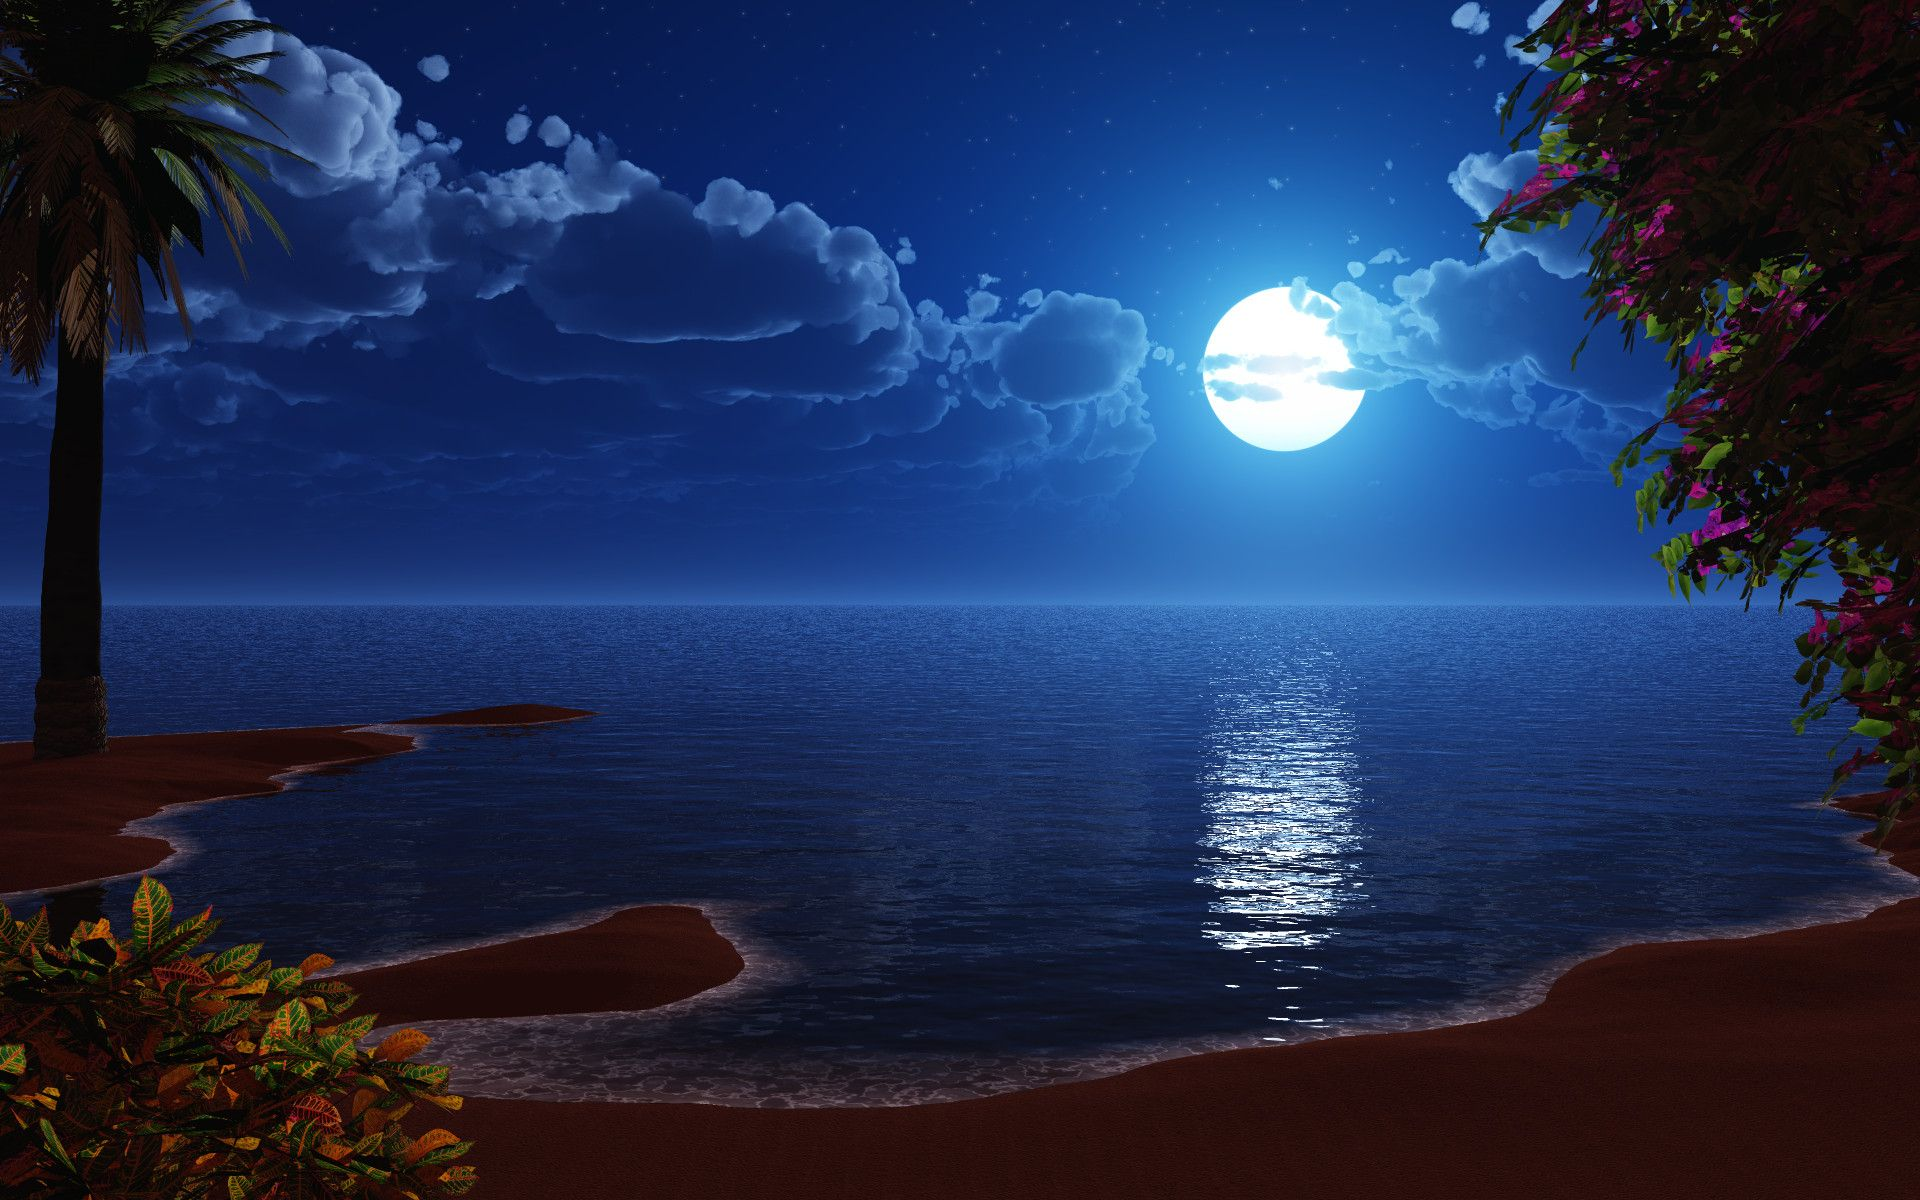 Fantastic View Of Moon In Moon Hd Wallpapers By Creativity There Are Over Several Hundreds Of Distinctive Categories Ocean At Night Beach At Night Beach Night